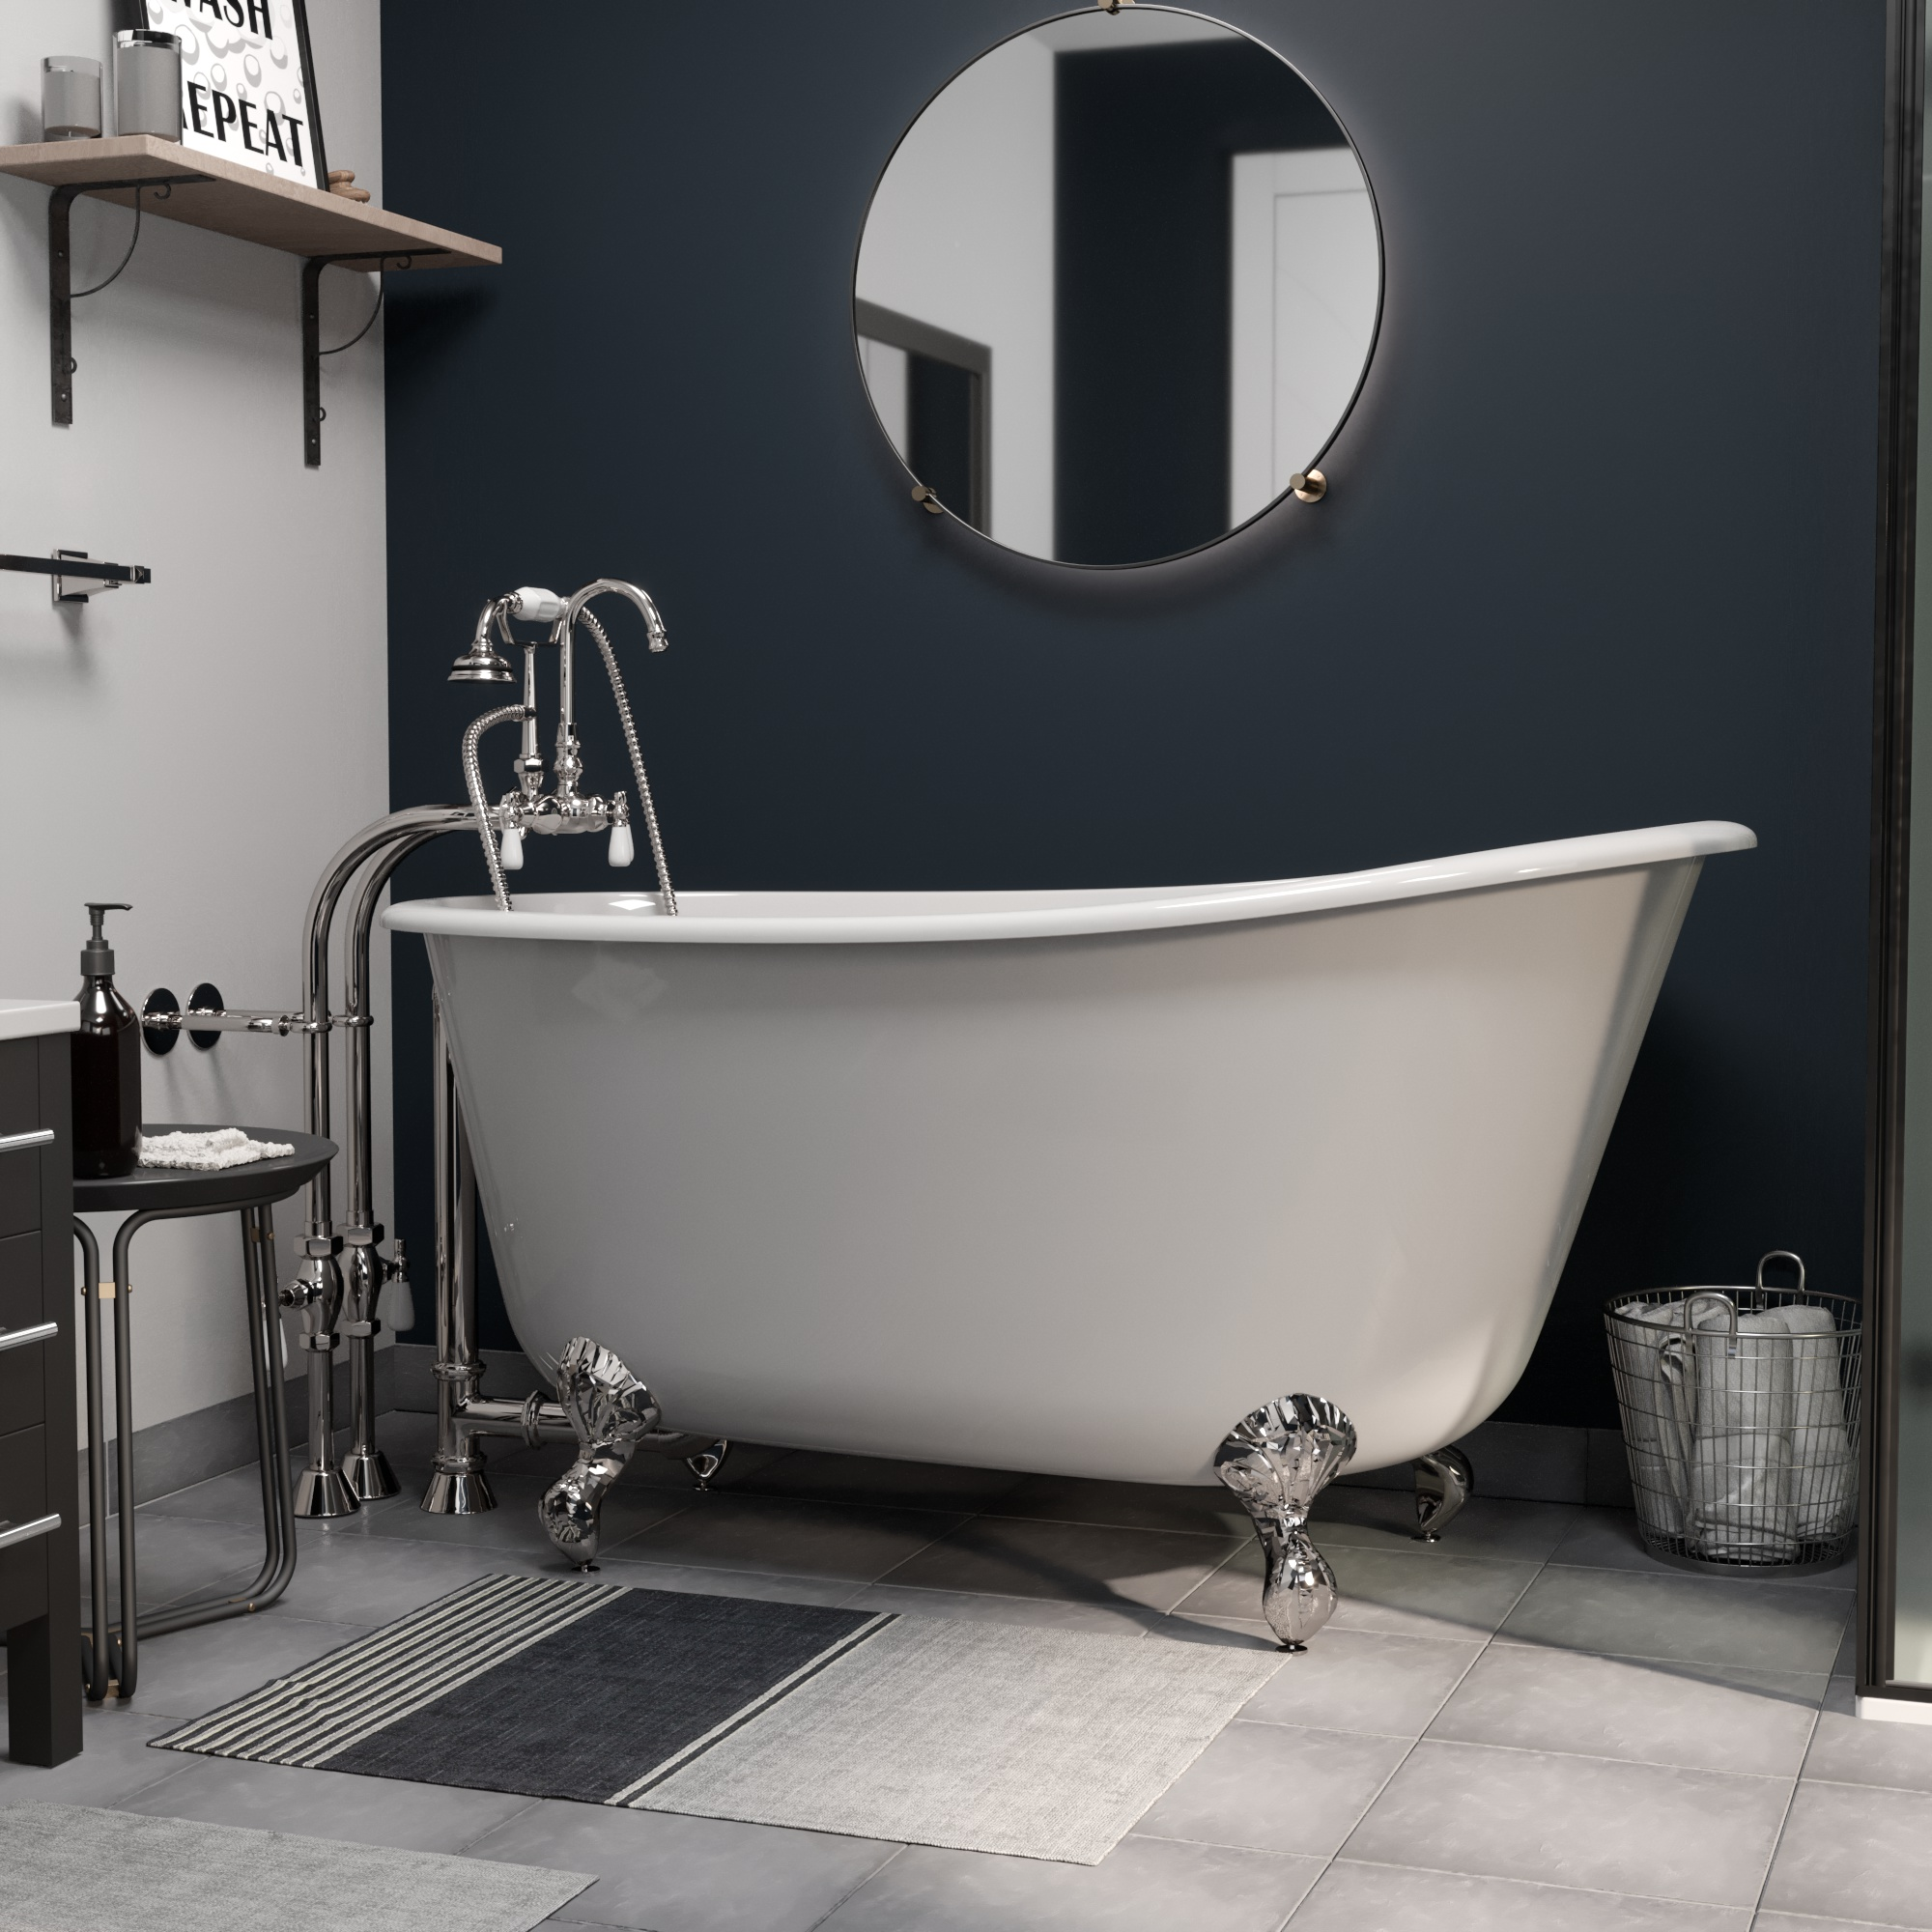 """Cast Iron Swedish Slipper Tub 58"""" X 30"""" with no Faucet Drillings and Complete Polished Chrome Free Standing English Telephone Style Faucet with Hand Held Shower Assembly Plumbing Package"""